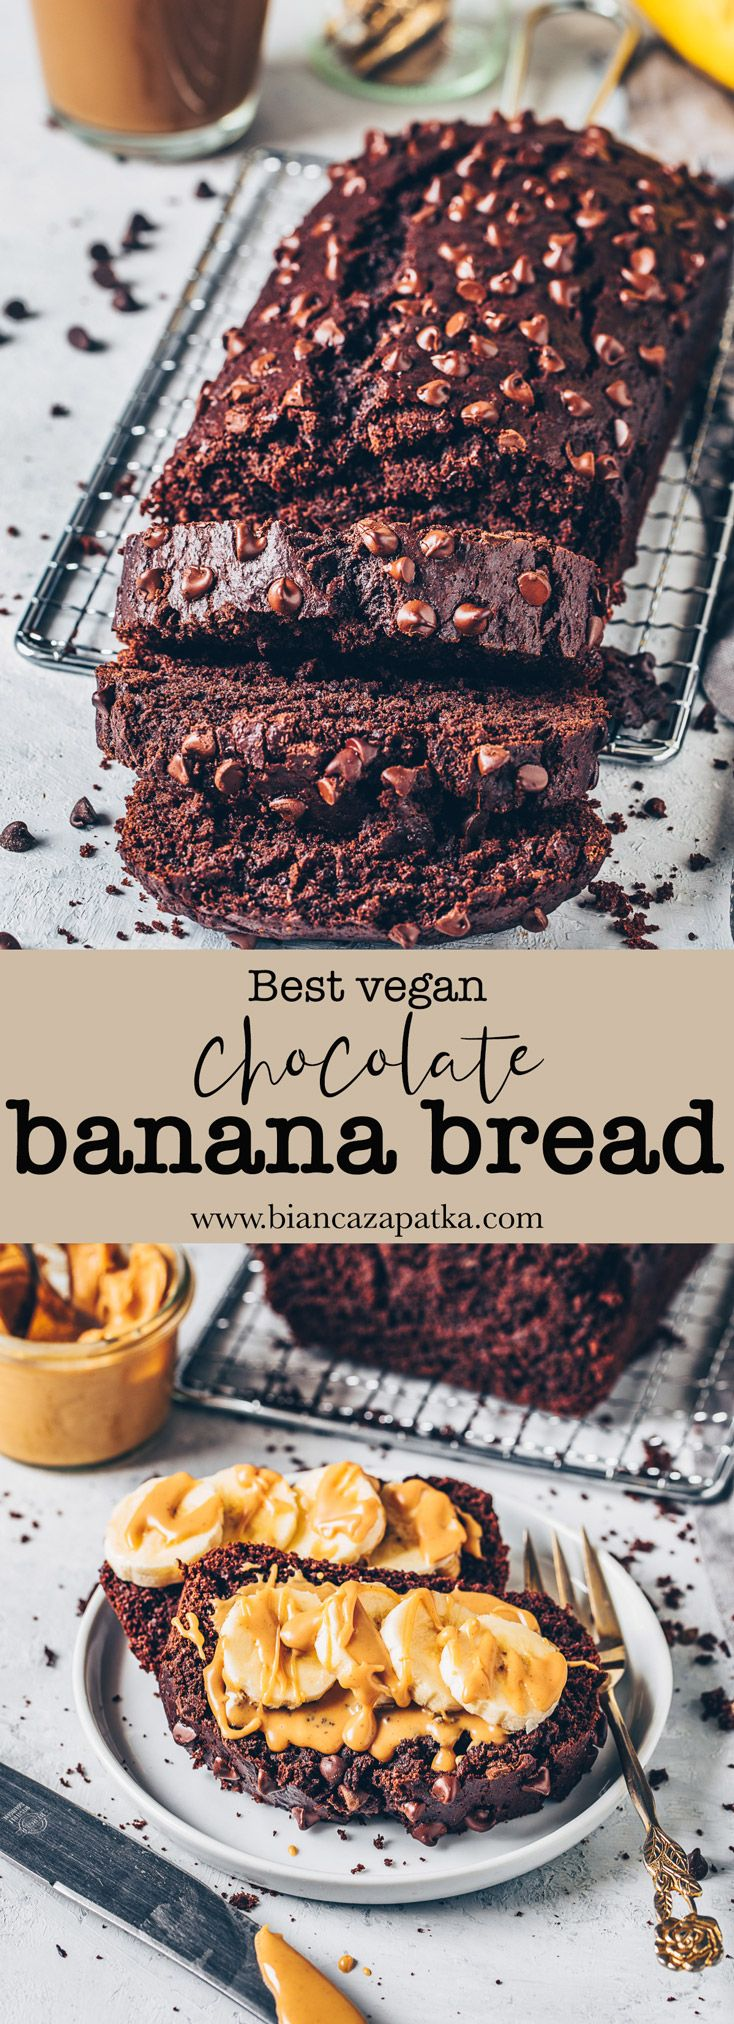 Best Vegan Chocolate Banana Bread – Bianca Zapatka | Recipes